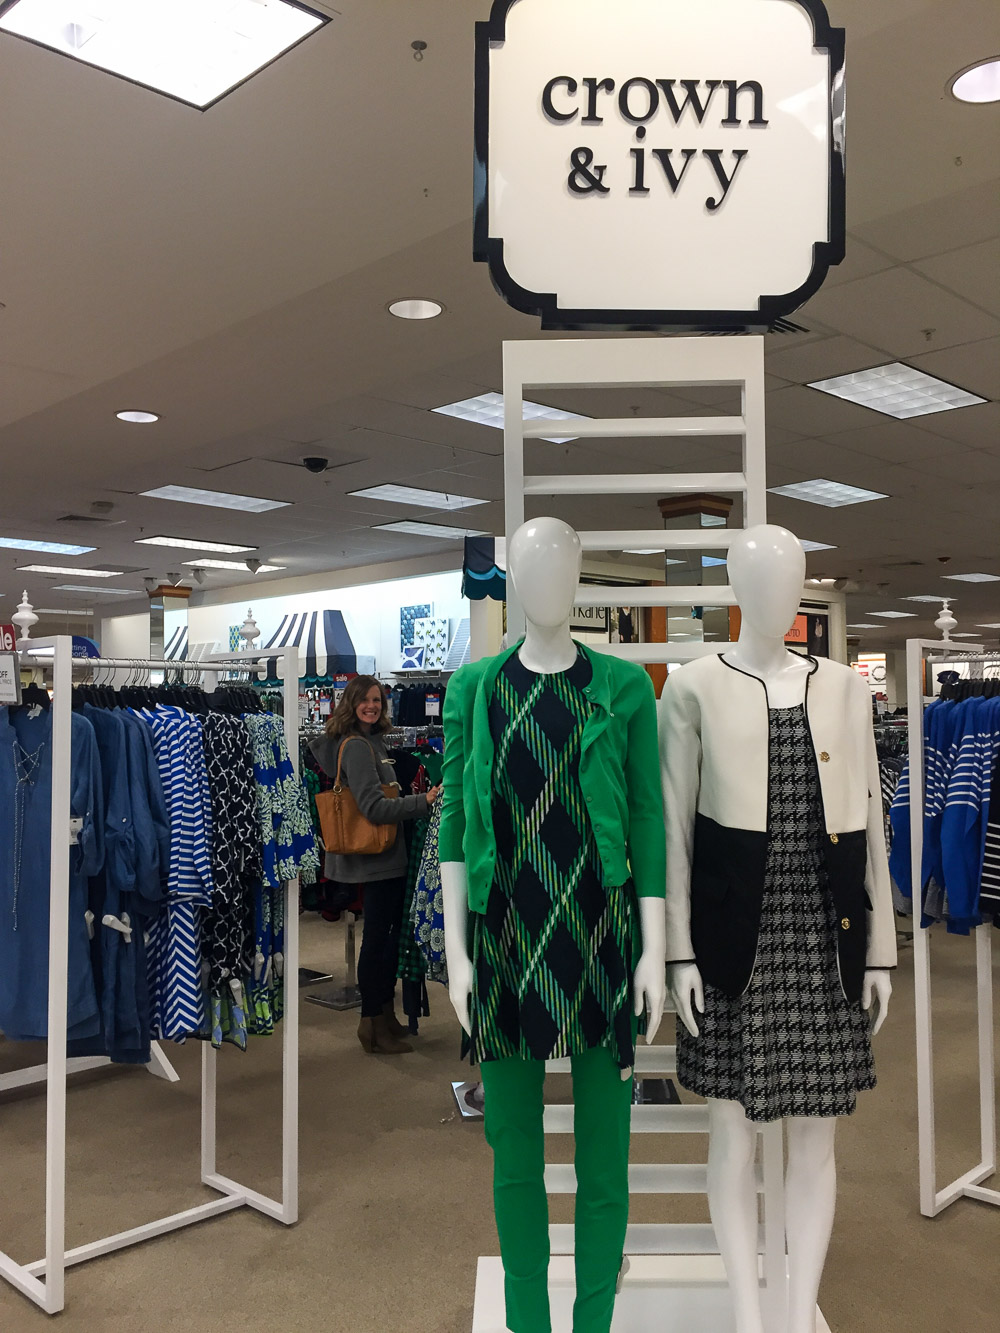 The Southern Brand You Should Be Shopping Crown Ivy